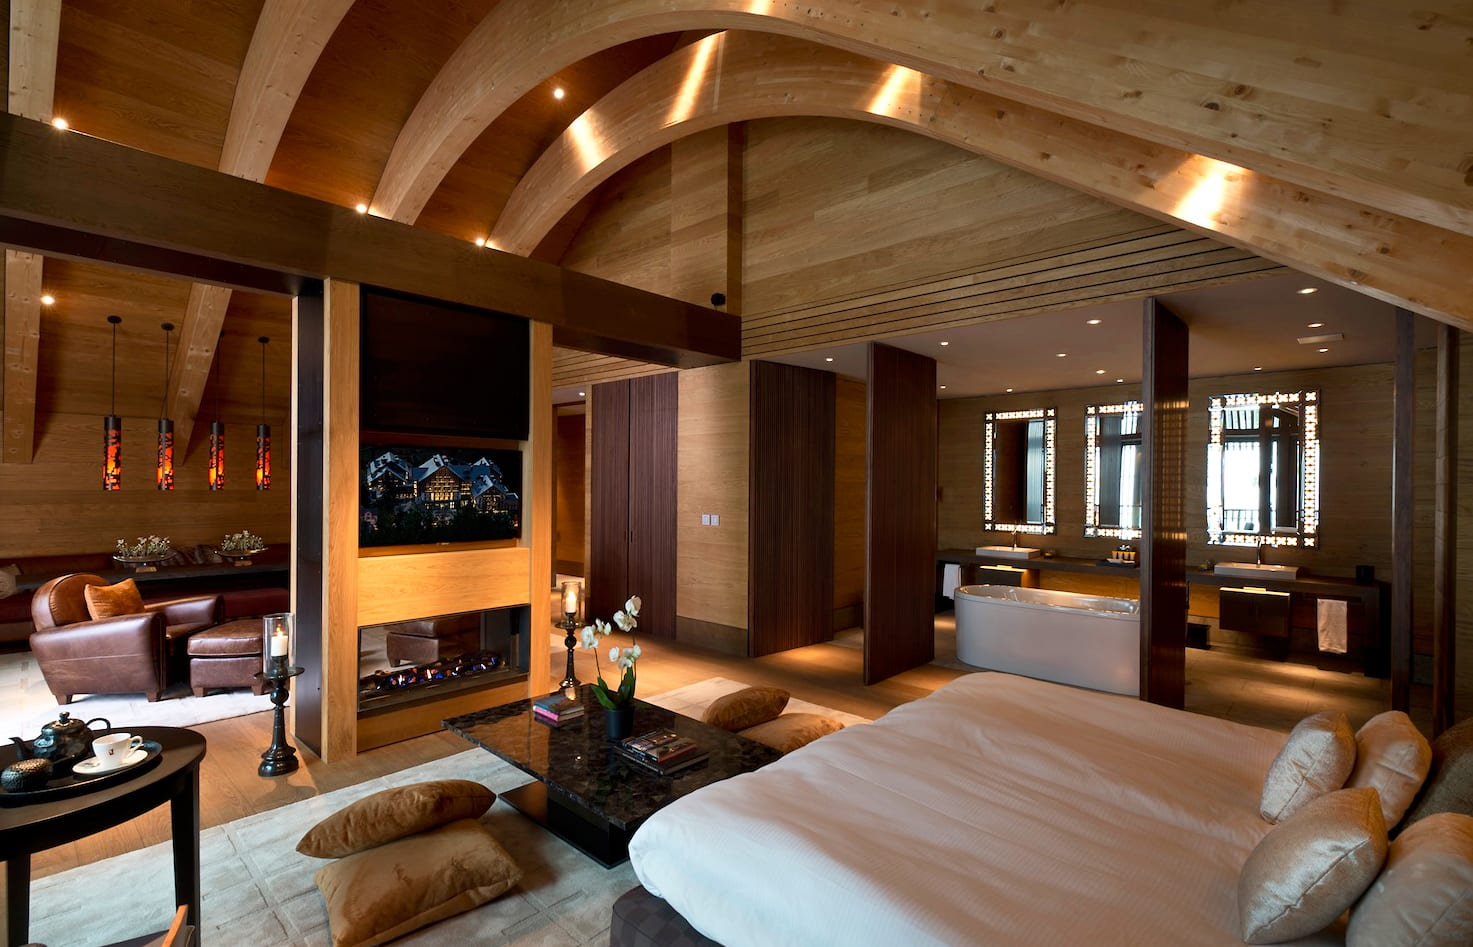 Gemsstock Suite. The Chedi Andermatt, Switzerland. © GHM